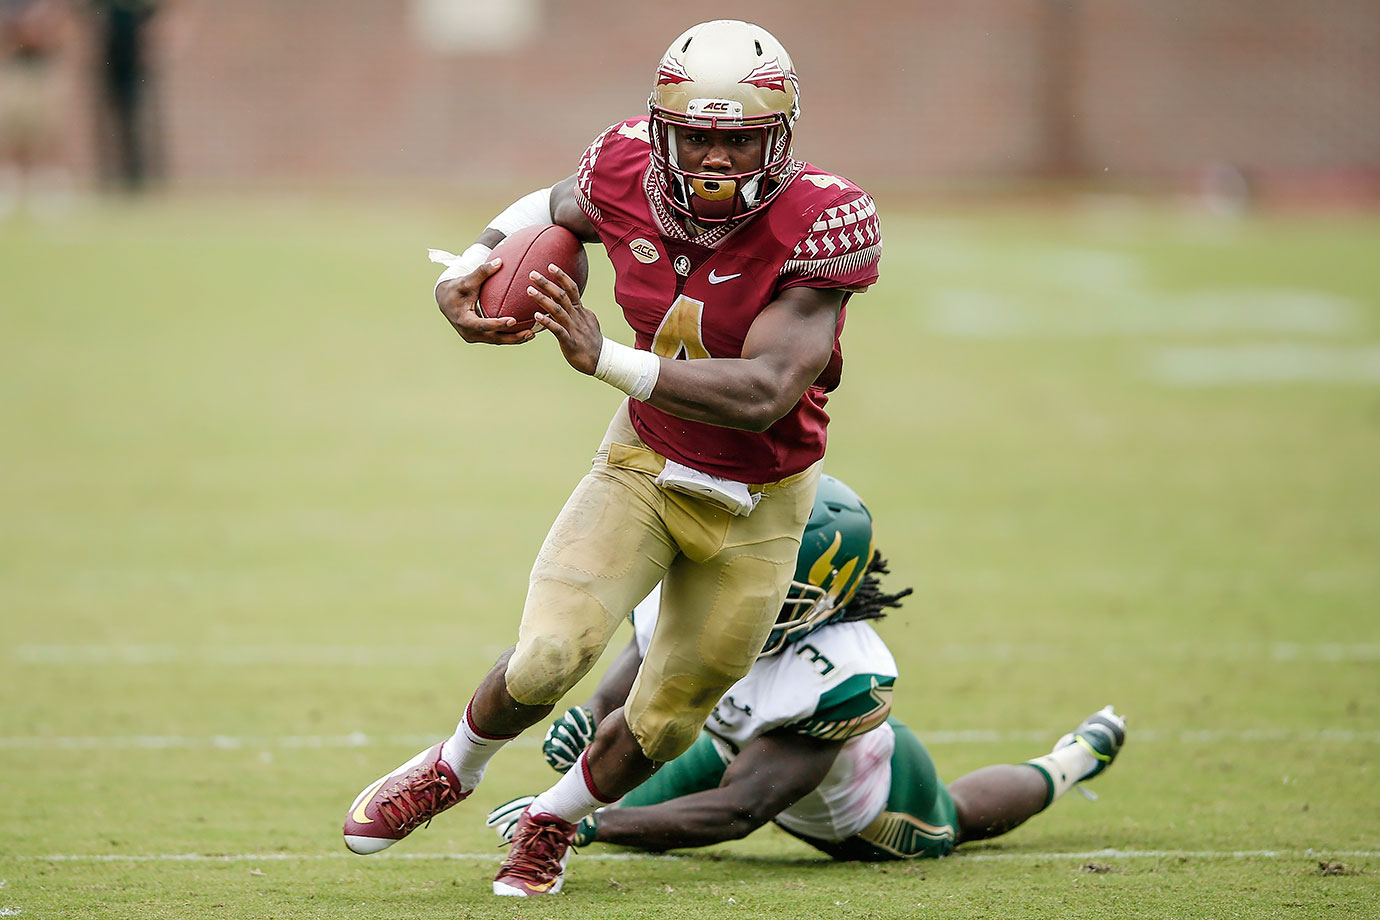 Cook set Florida State record for rushing yards and all-purpose yards in a season en route to first-team All-ACC honors. After finishing seventh in the 2015 Heisman Trophy voting, he'll be on the short list to win the award next season.